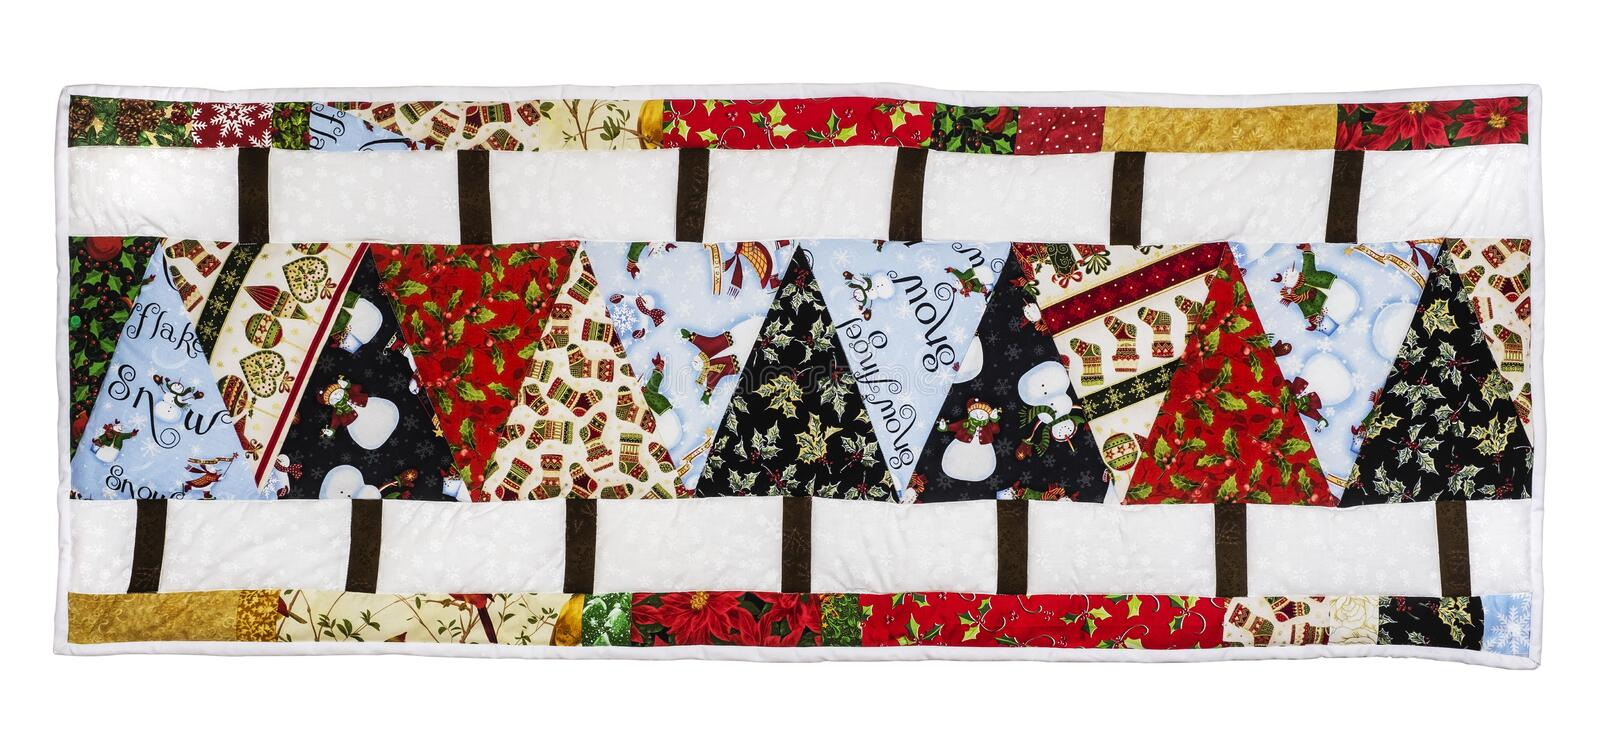 Christmas Quilt with trees. Christmas Quilt with border, colors fabrics on a white background with path icluded royalty free stock image